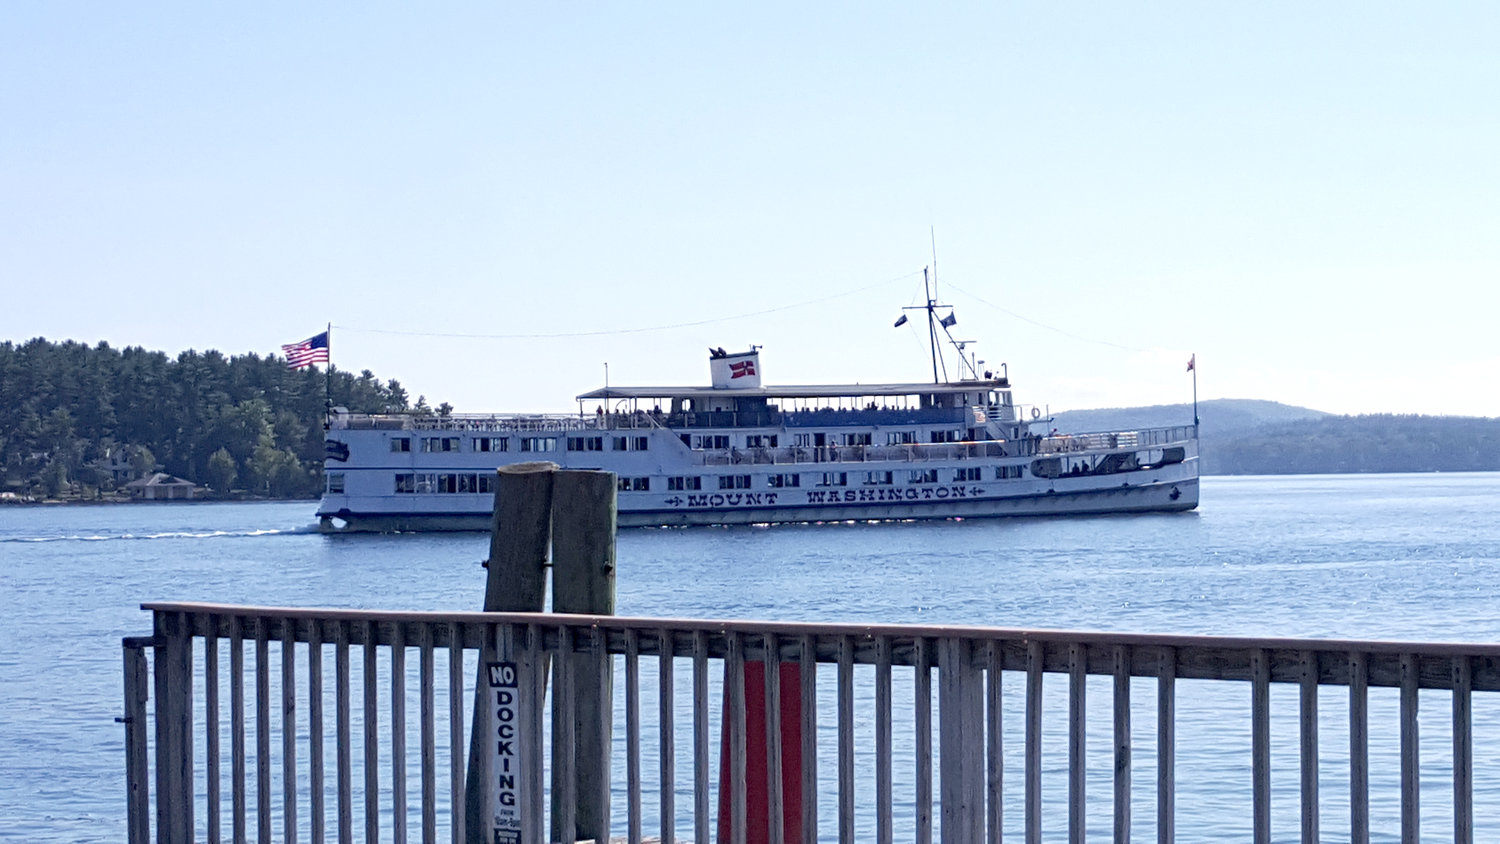 MS Mount Washington leaves Wolfeboro Town Docks